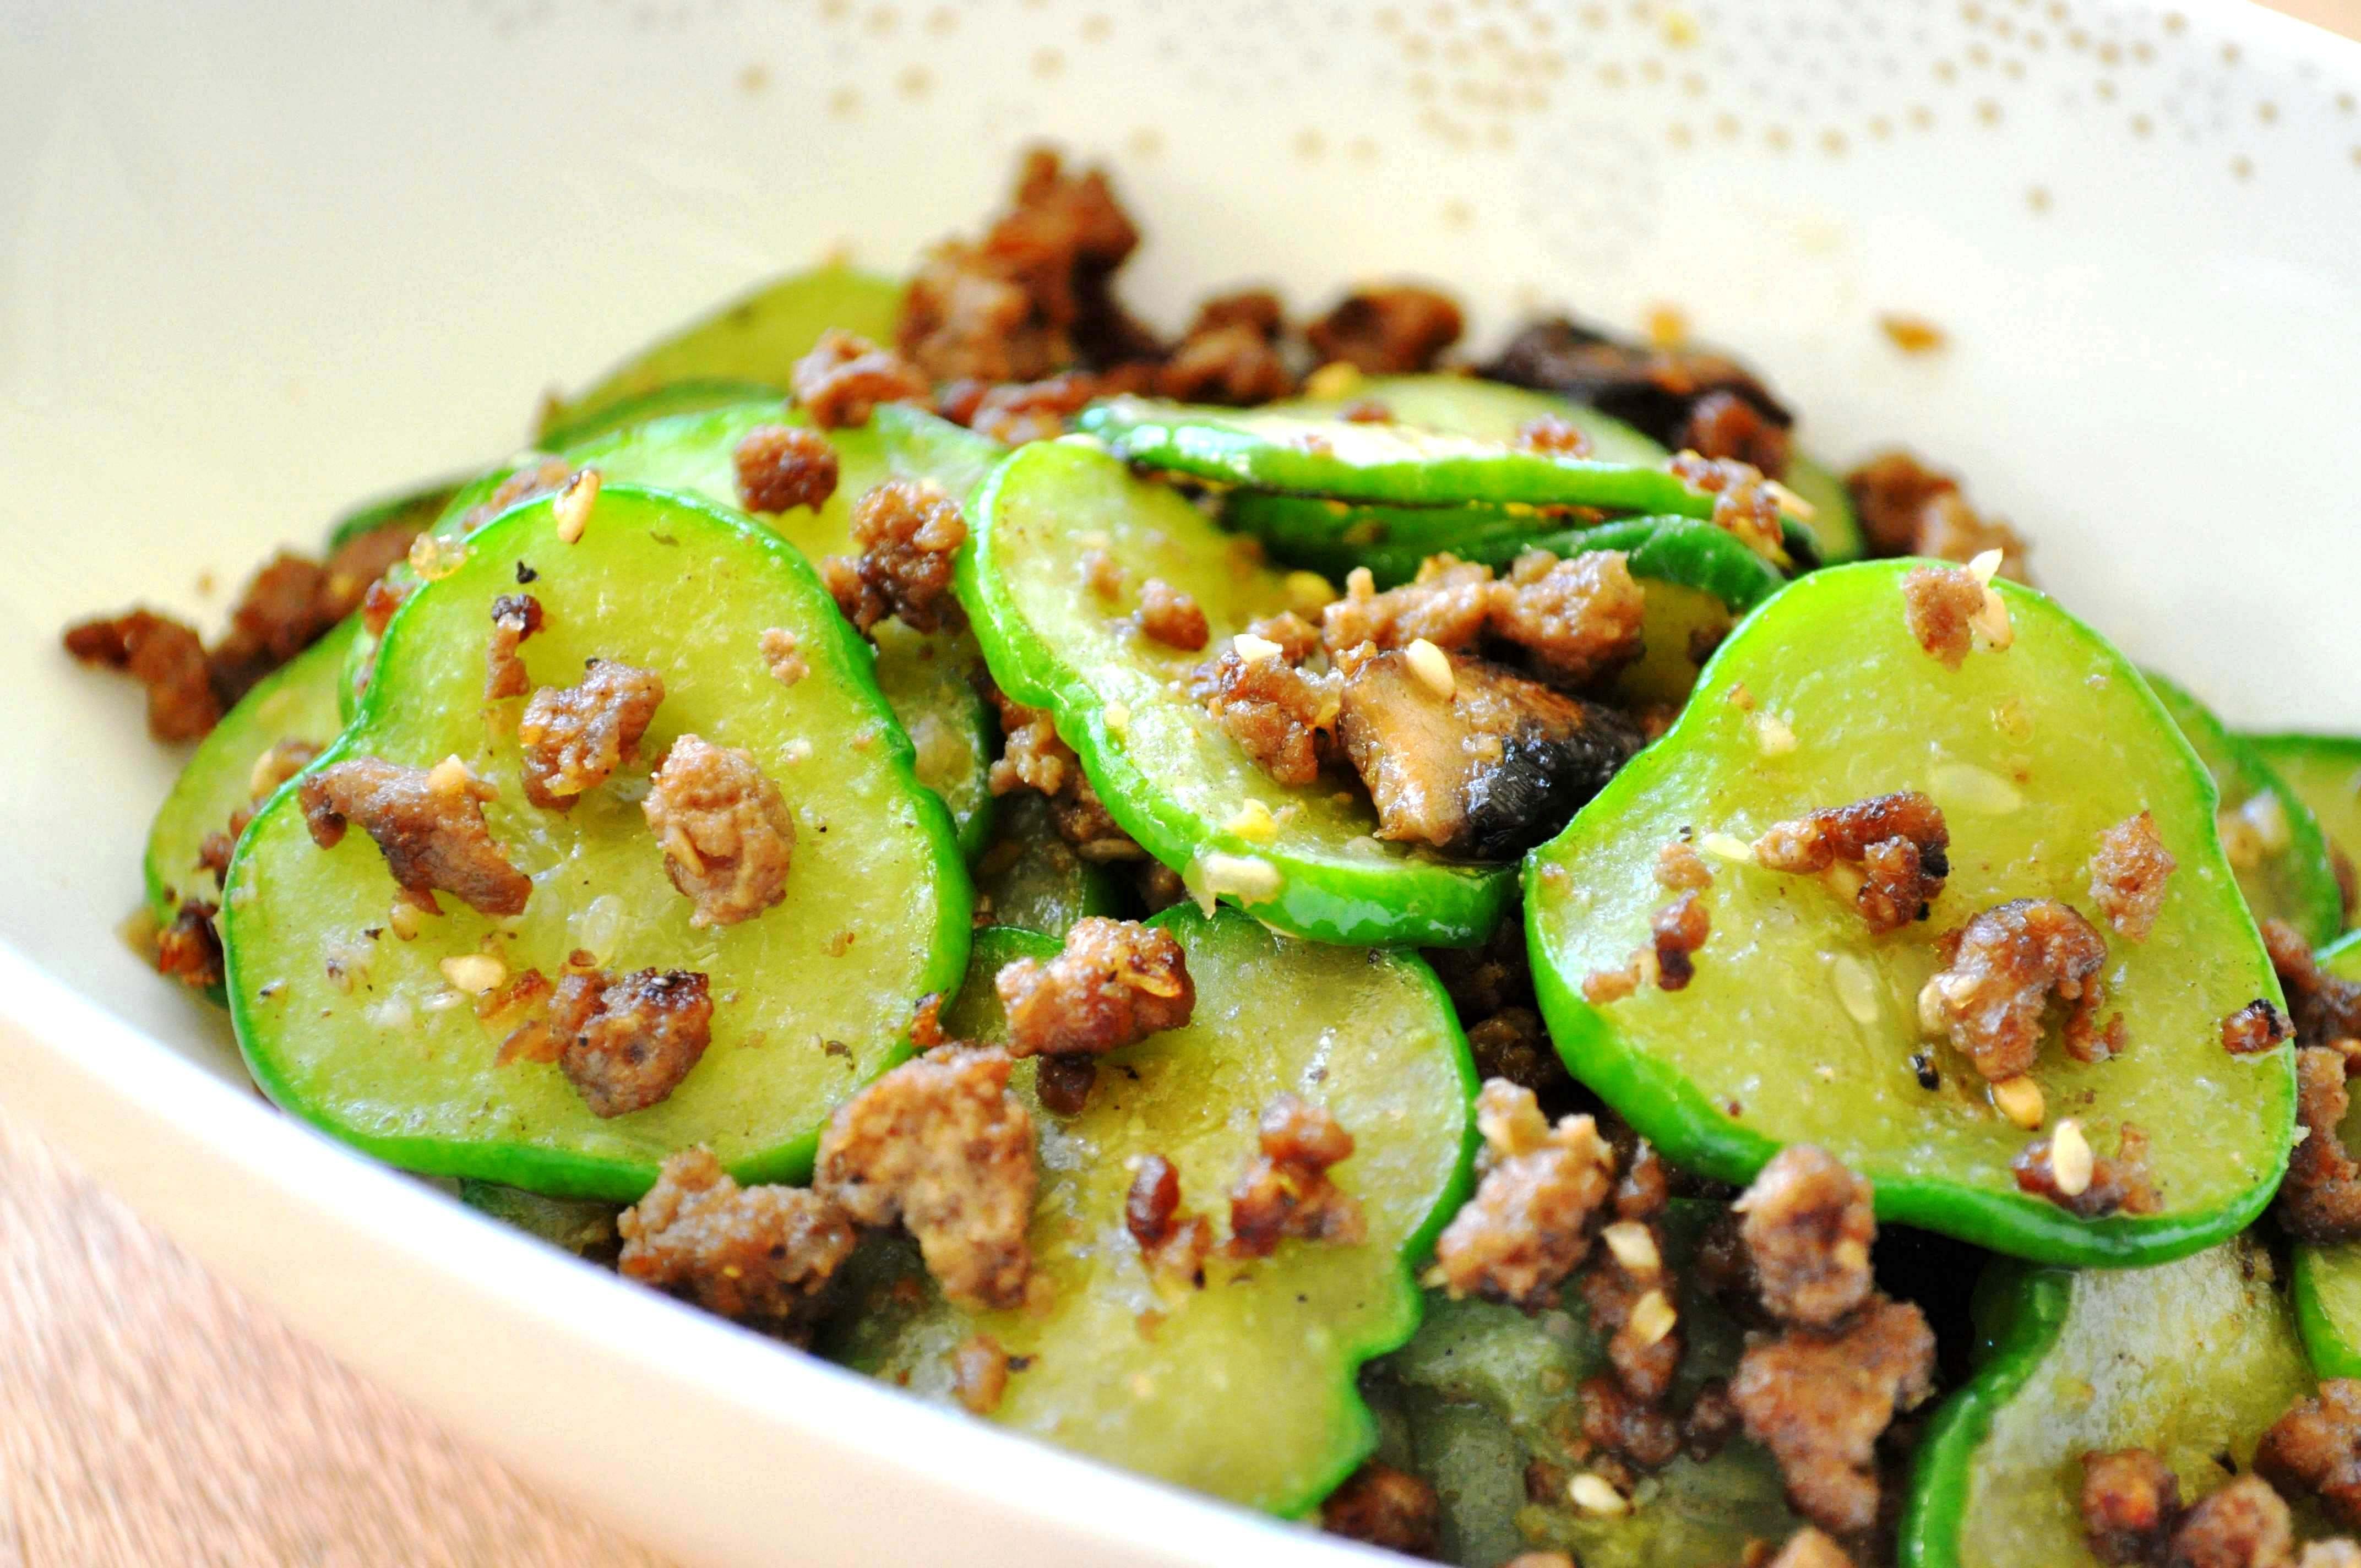 Stir-fried cucumbers (오이나물 oyi namul)